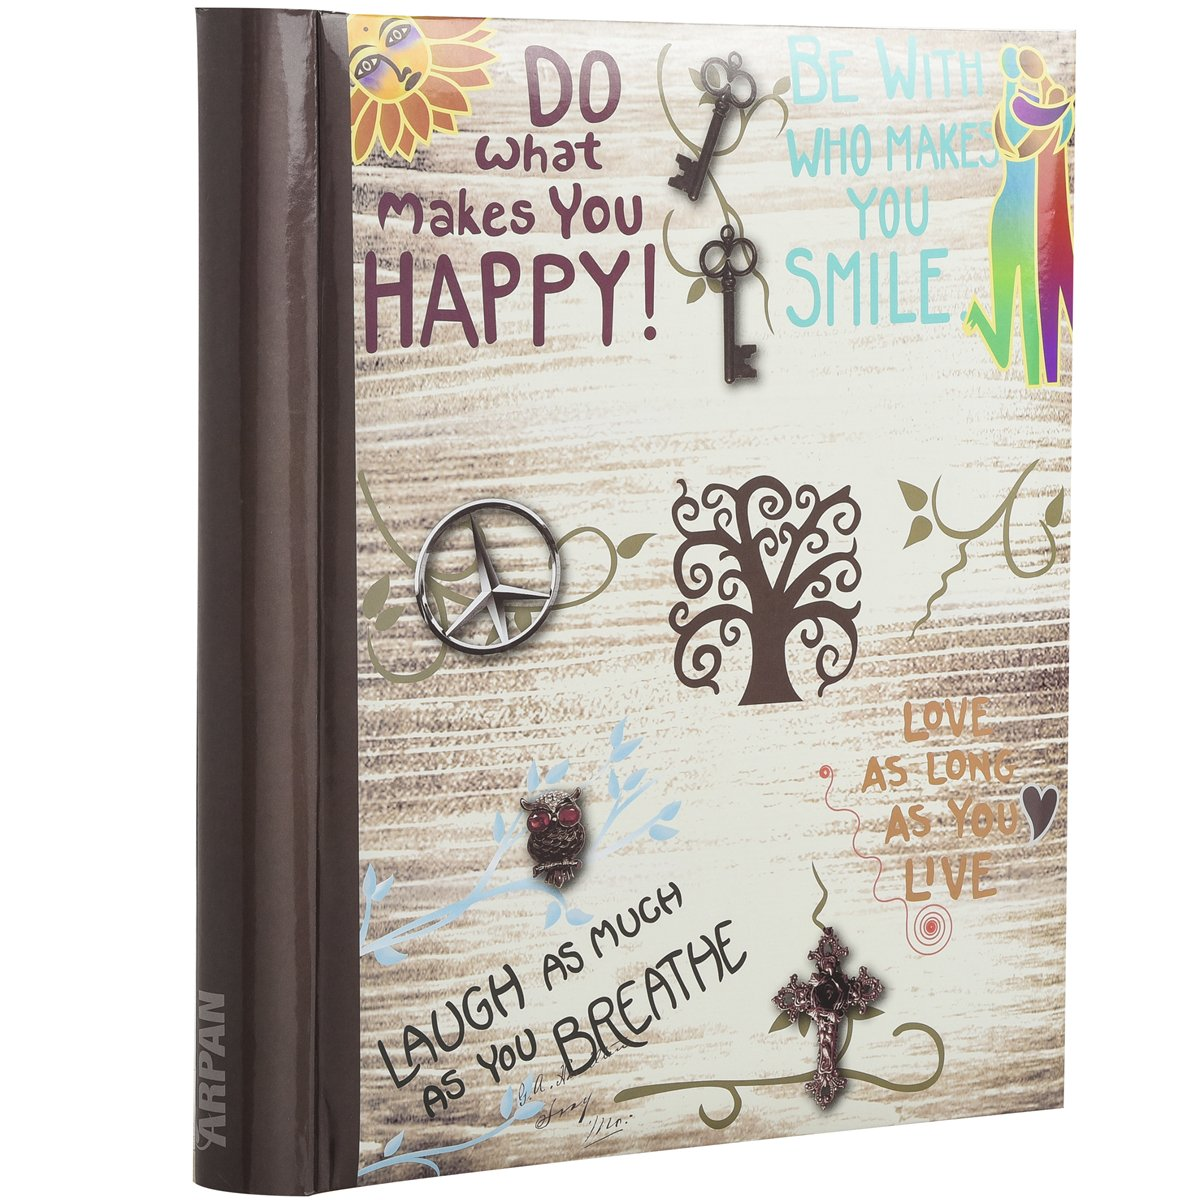 Arpan Large Self-Adhesive Magnetic Page Photo Albums - Life inspirational slogans Photo Album x 1